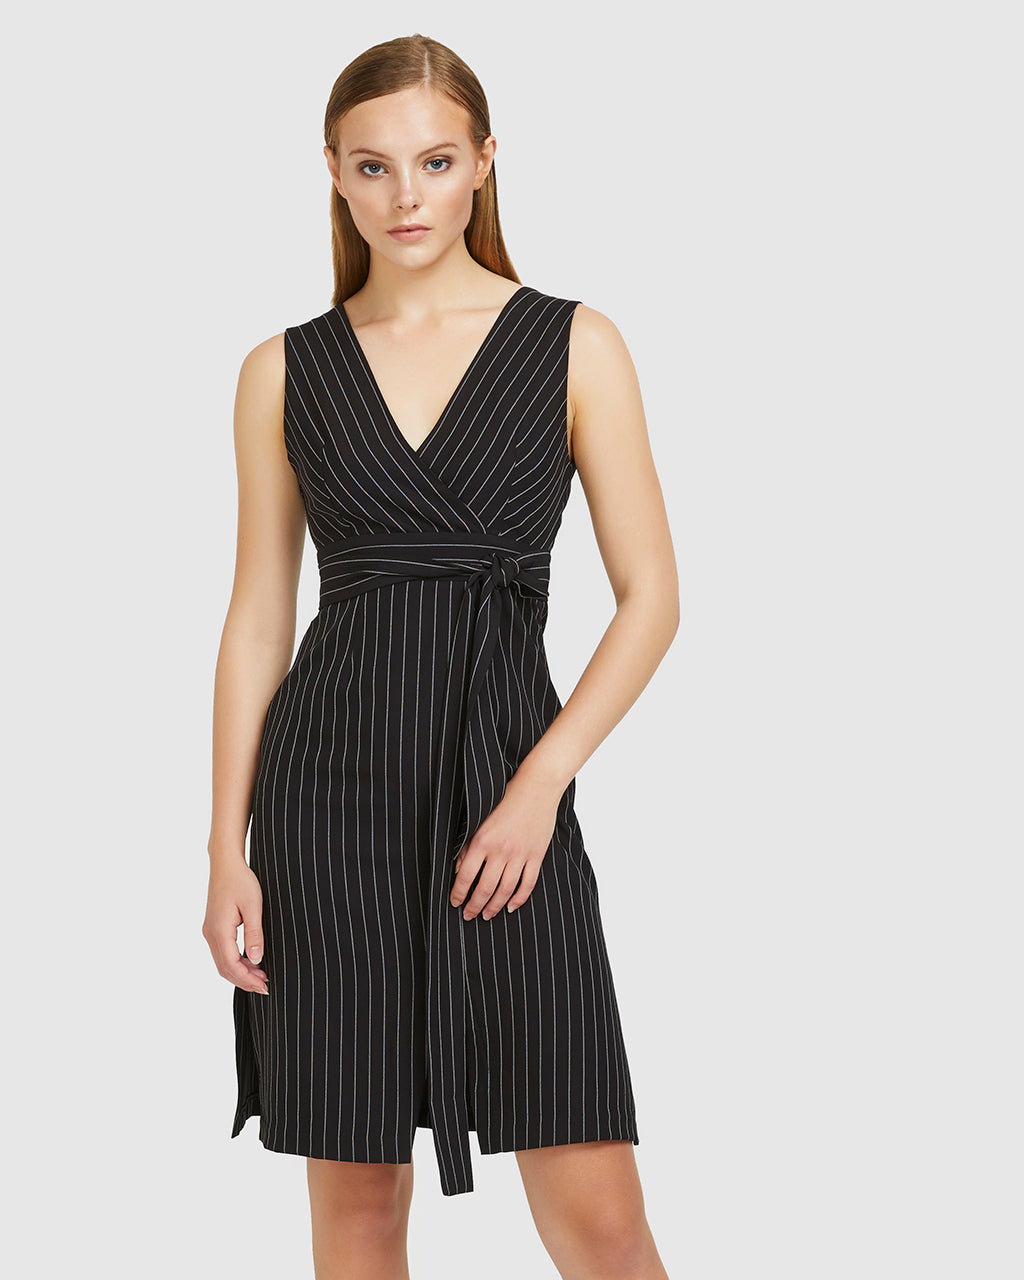 Samples & Seconds - Pinstripe Tie-Belt Dress - Black